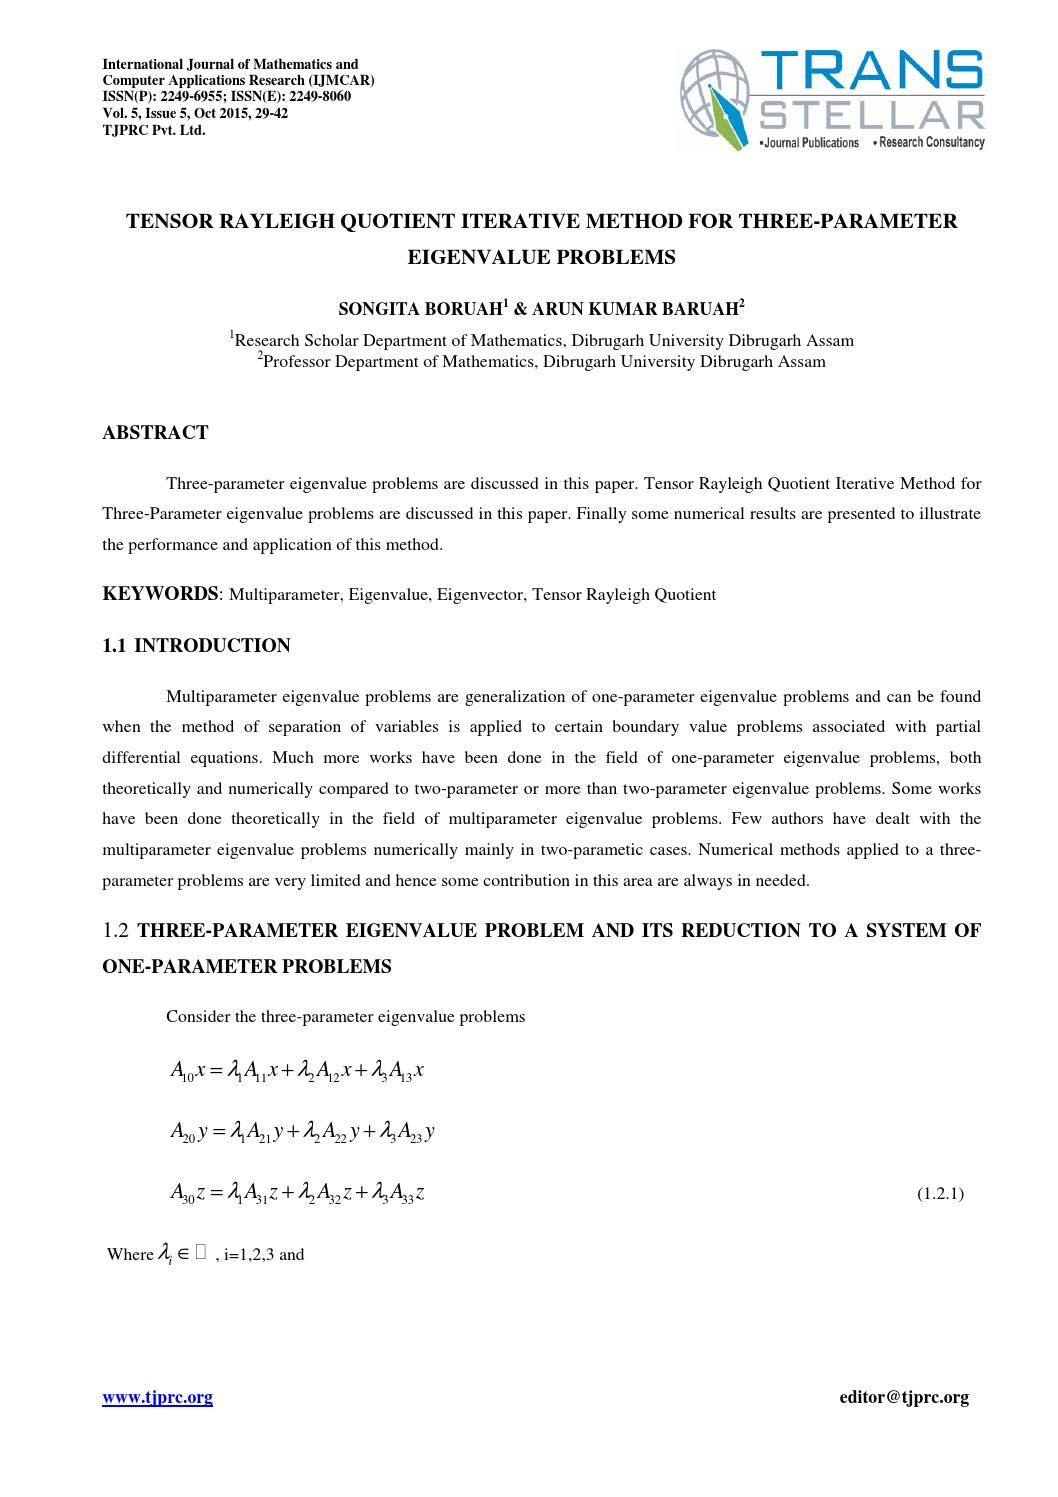 application of eigenvalue and eigenvector